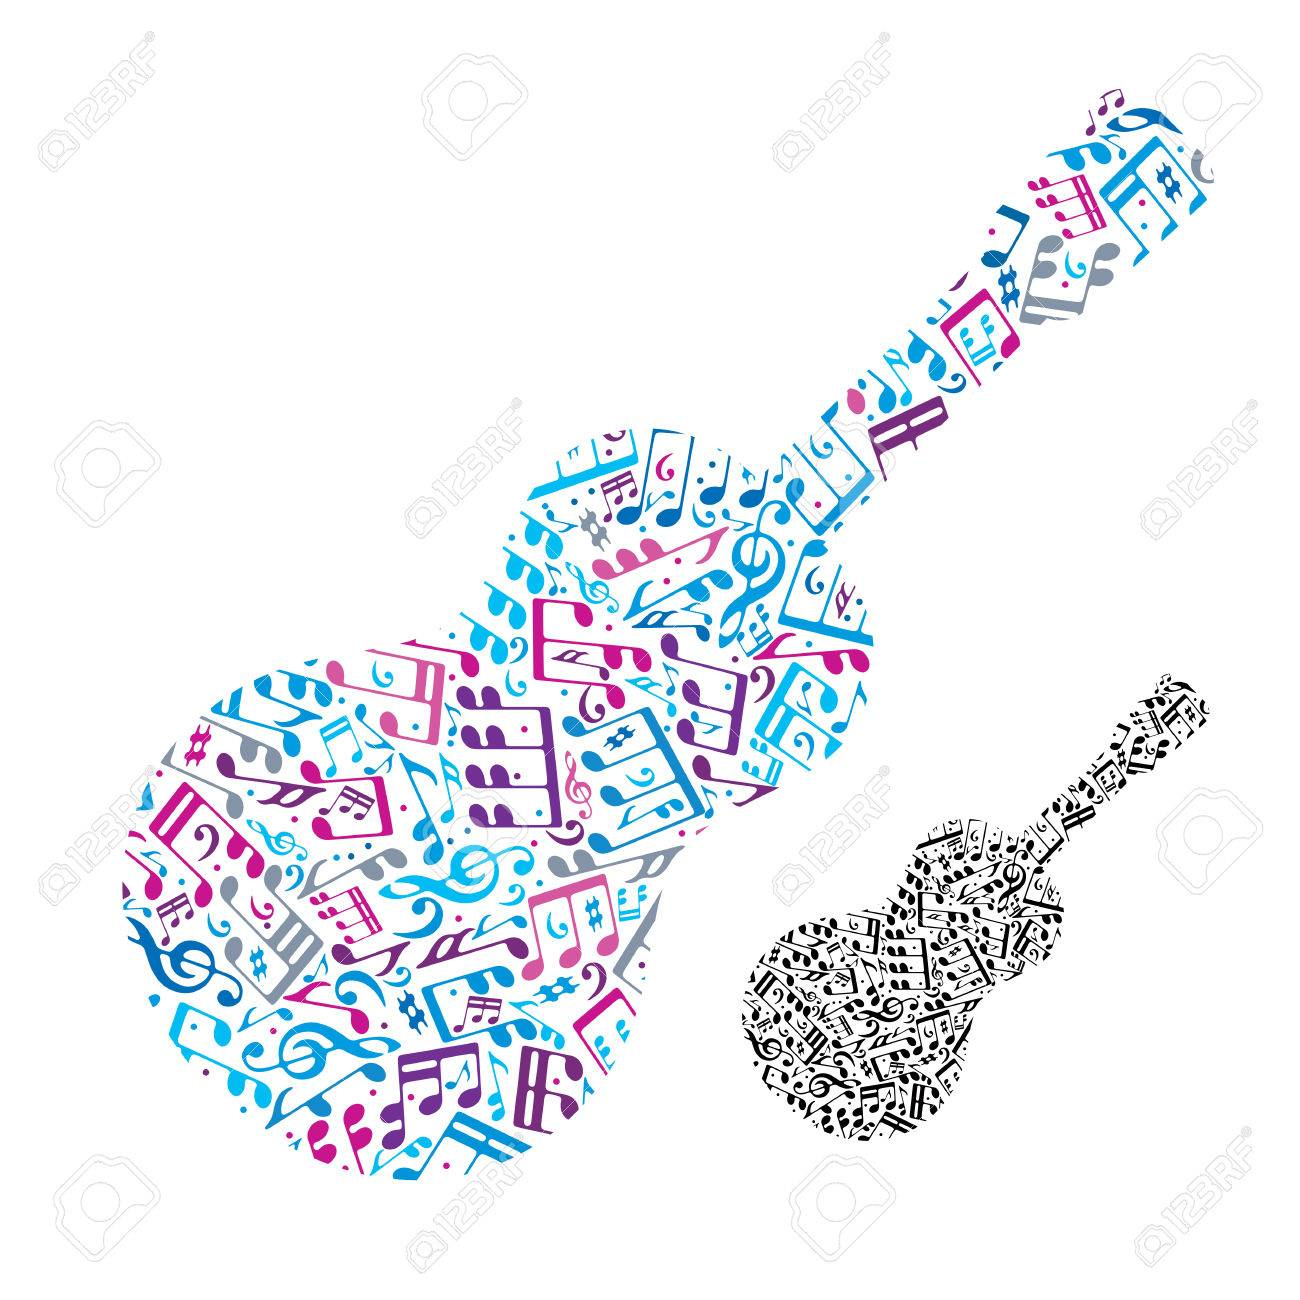 Bright Vector Acoustic Guitar Filled With Musical Notes Decorative